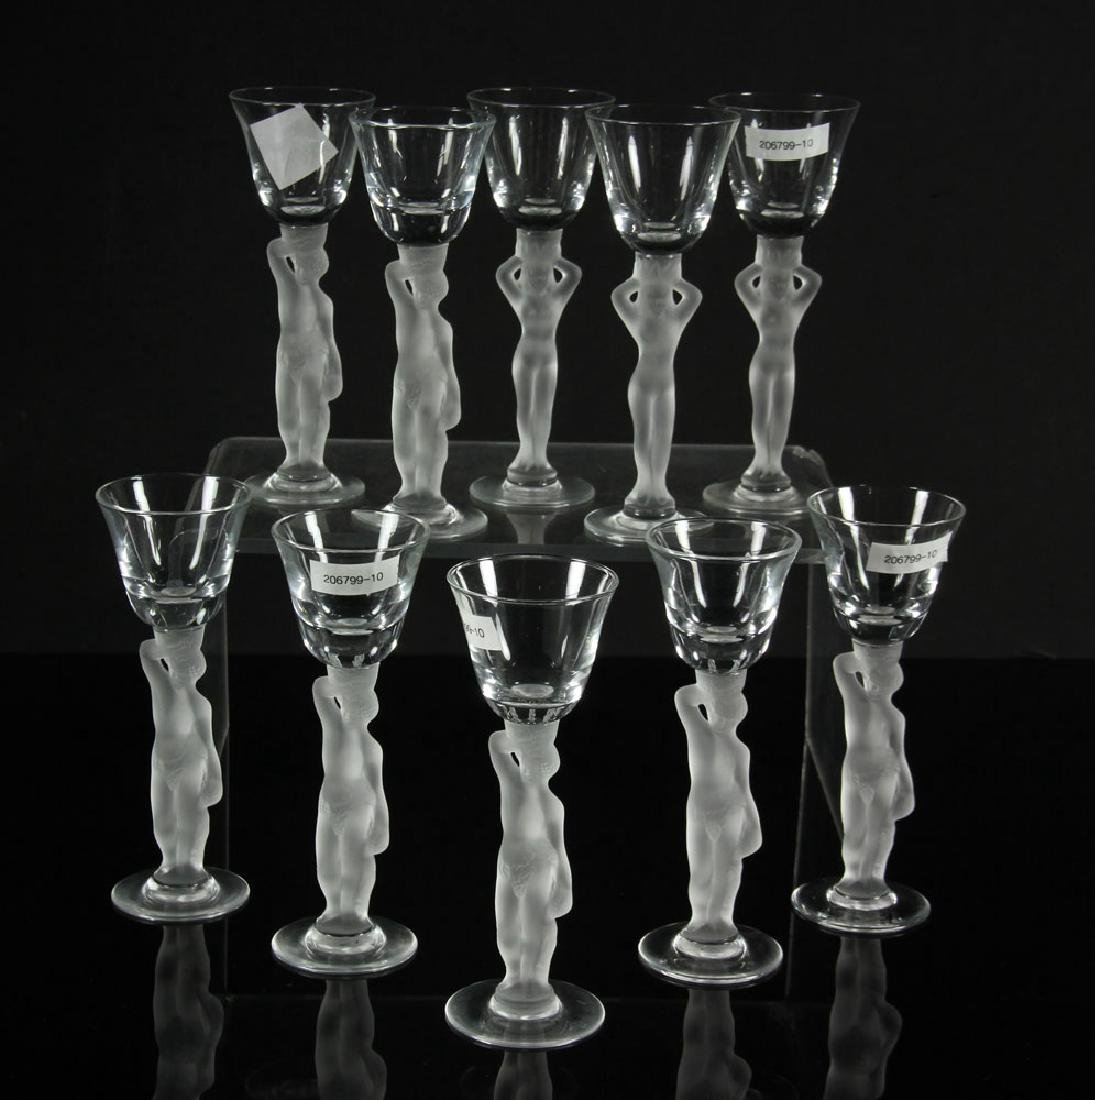 Set of 10 Gallerie Lafayette Cordials